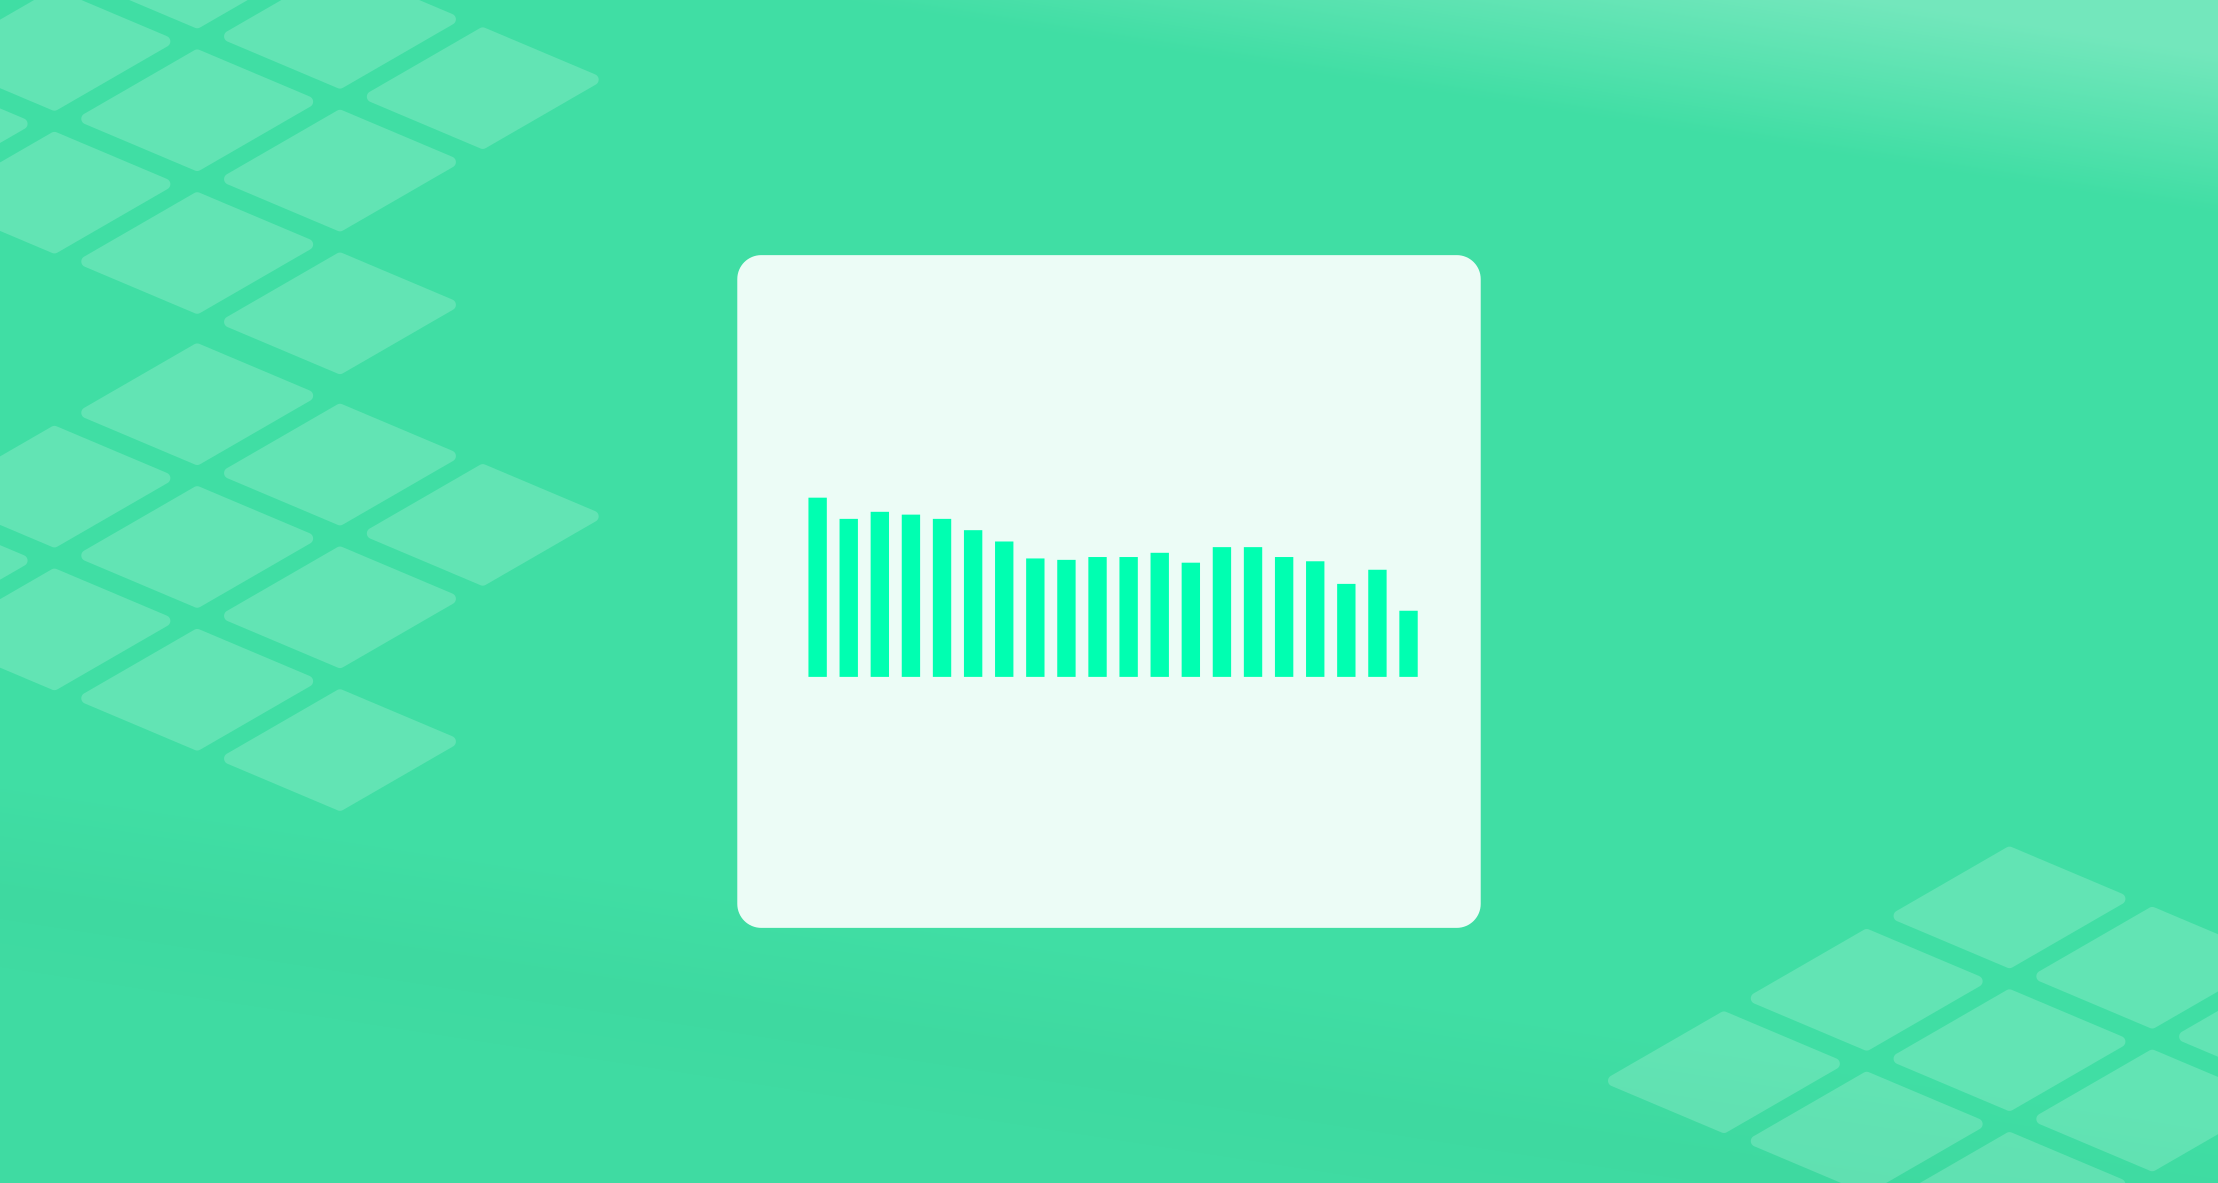 Introducing the Emebedded Player Widget - Next-Gen HTML5 Radio Player